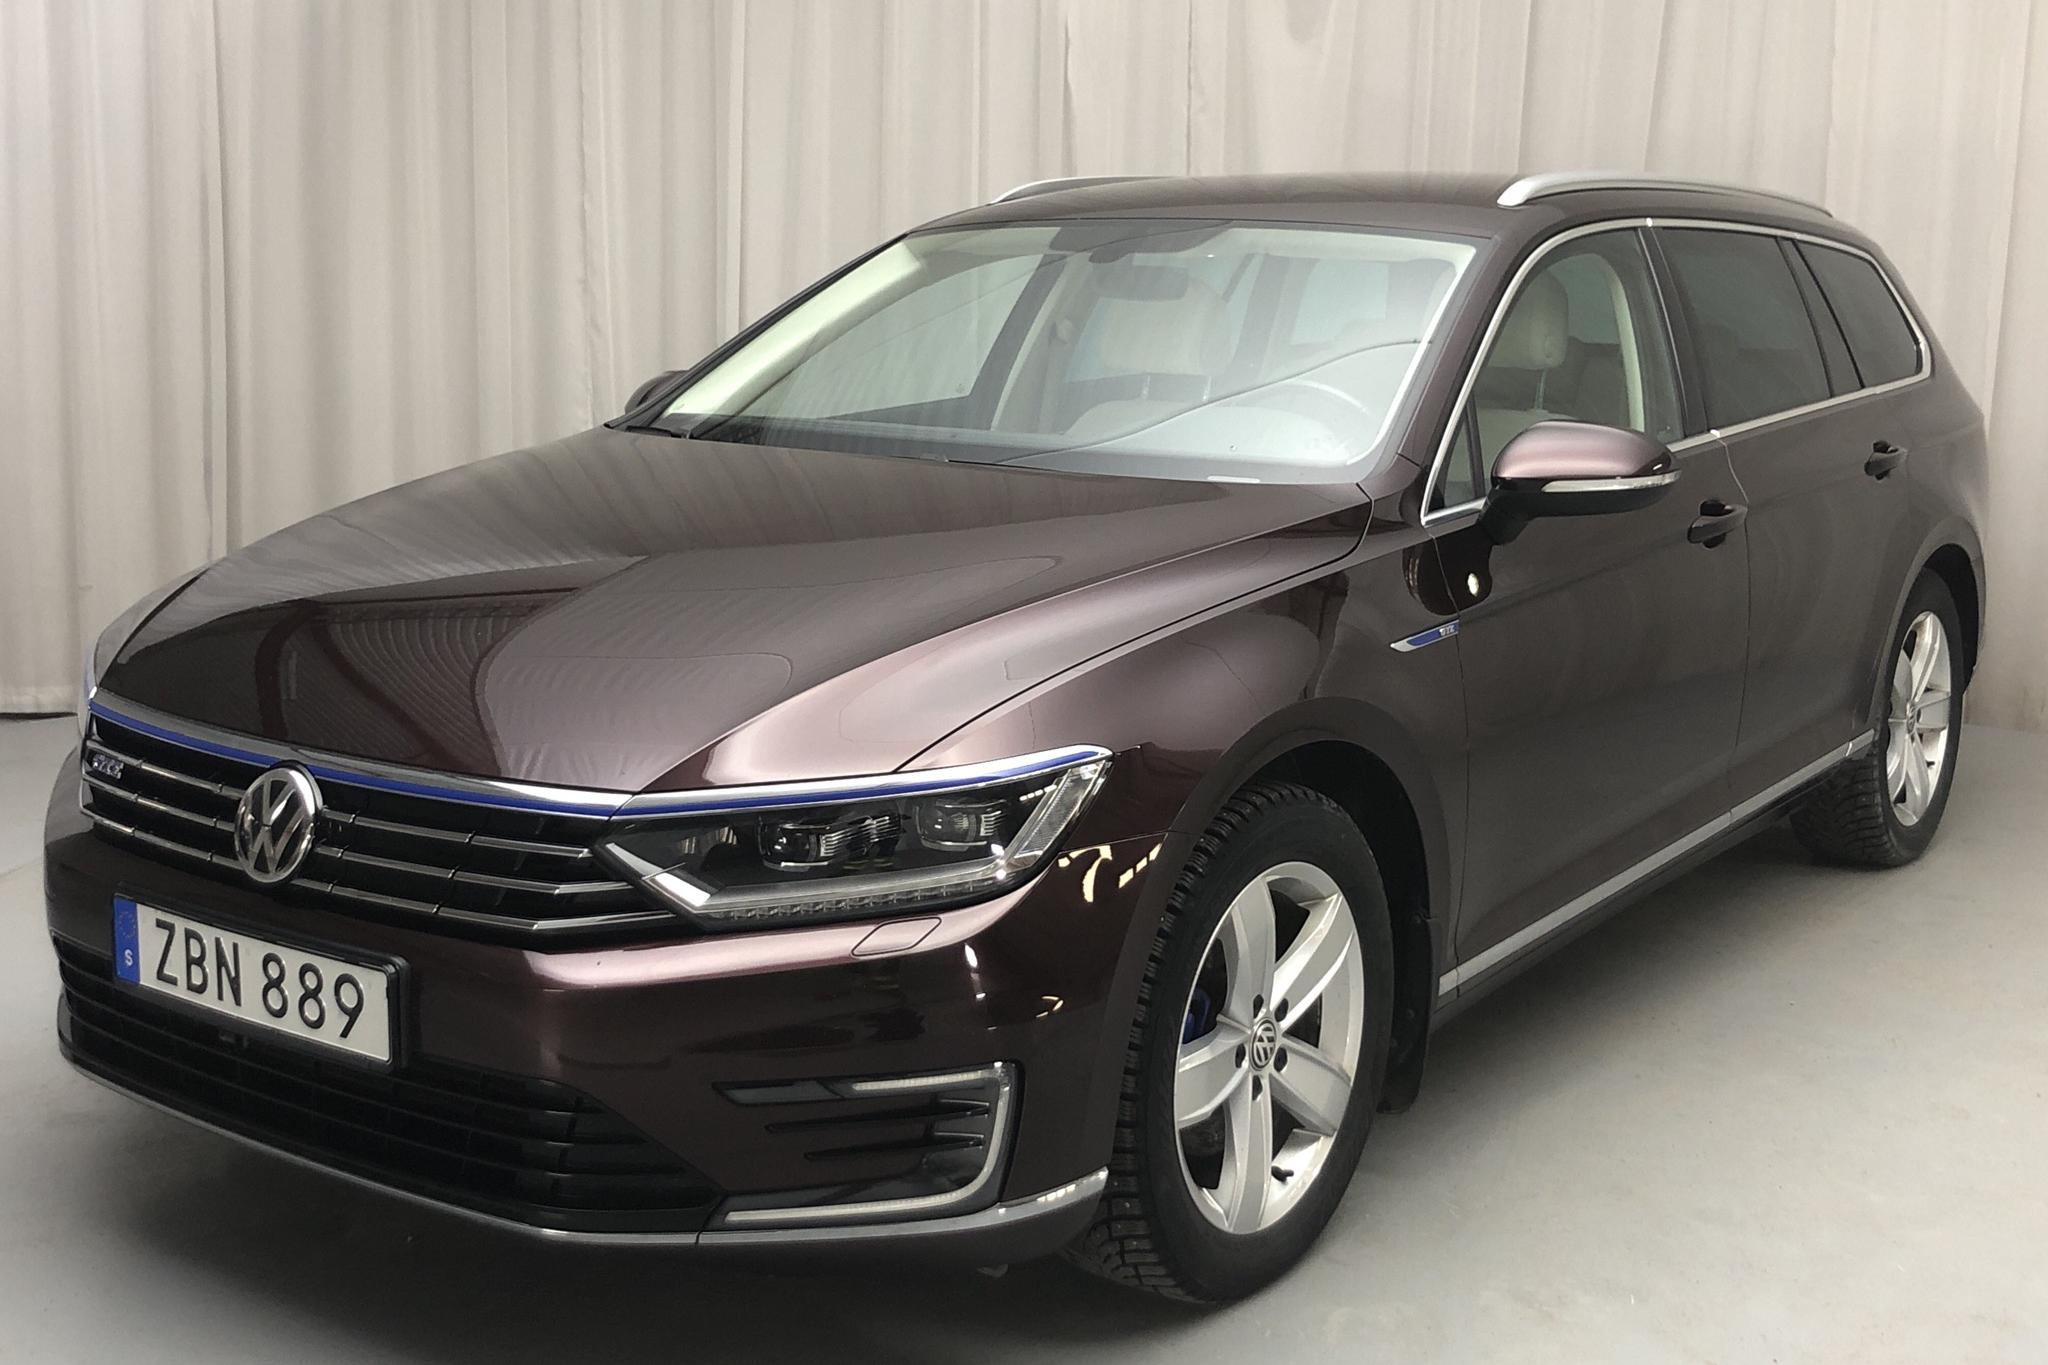 VW Passat 1.4 Plug-in-Hybrid Sportscombi (218hk) - 72 260 km - Automatic - Dark Red - 2018